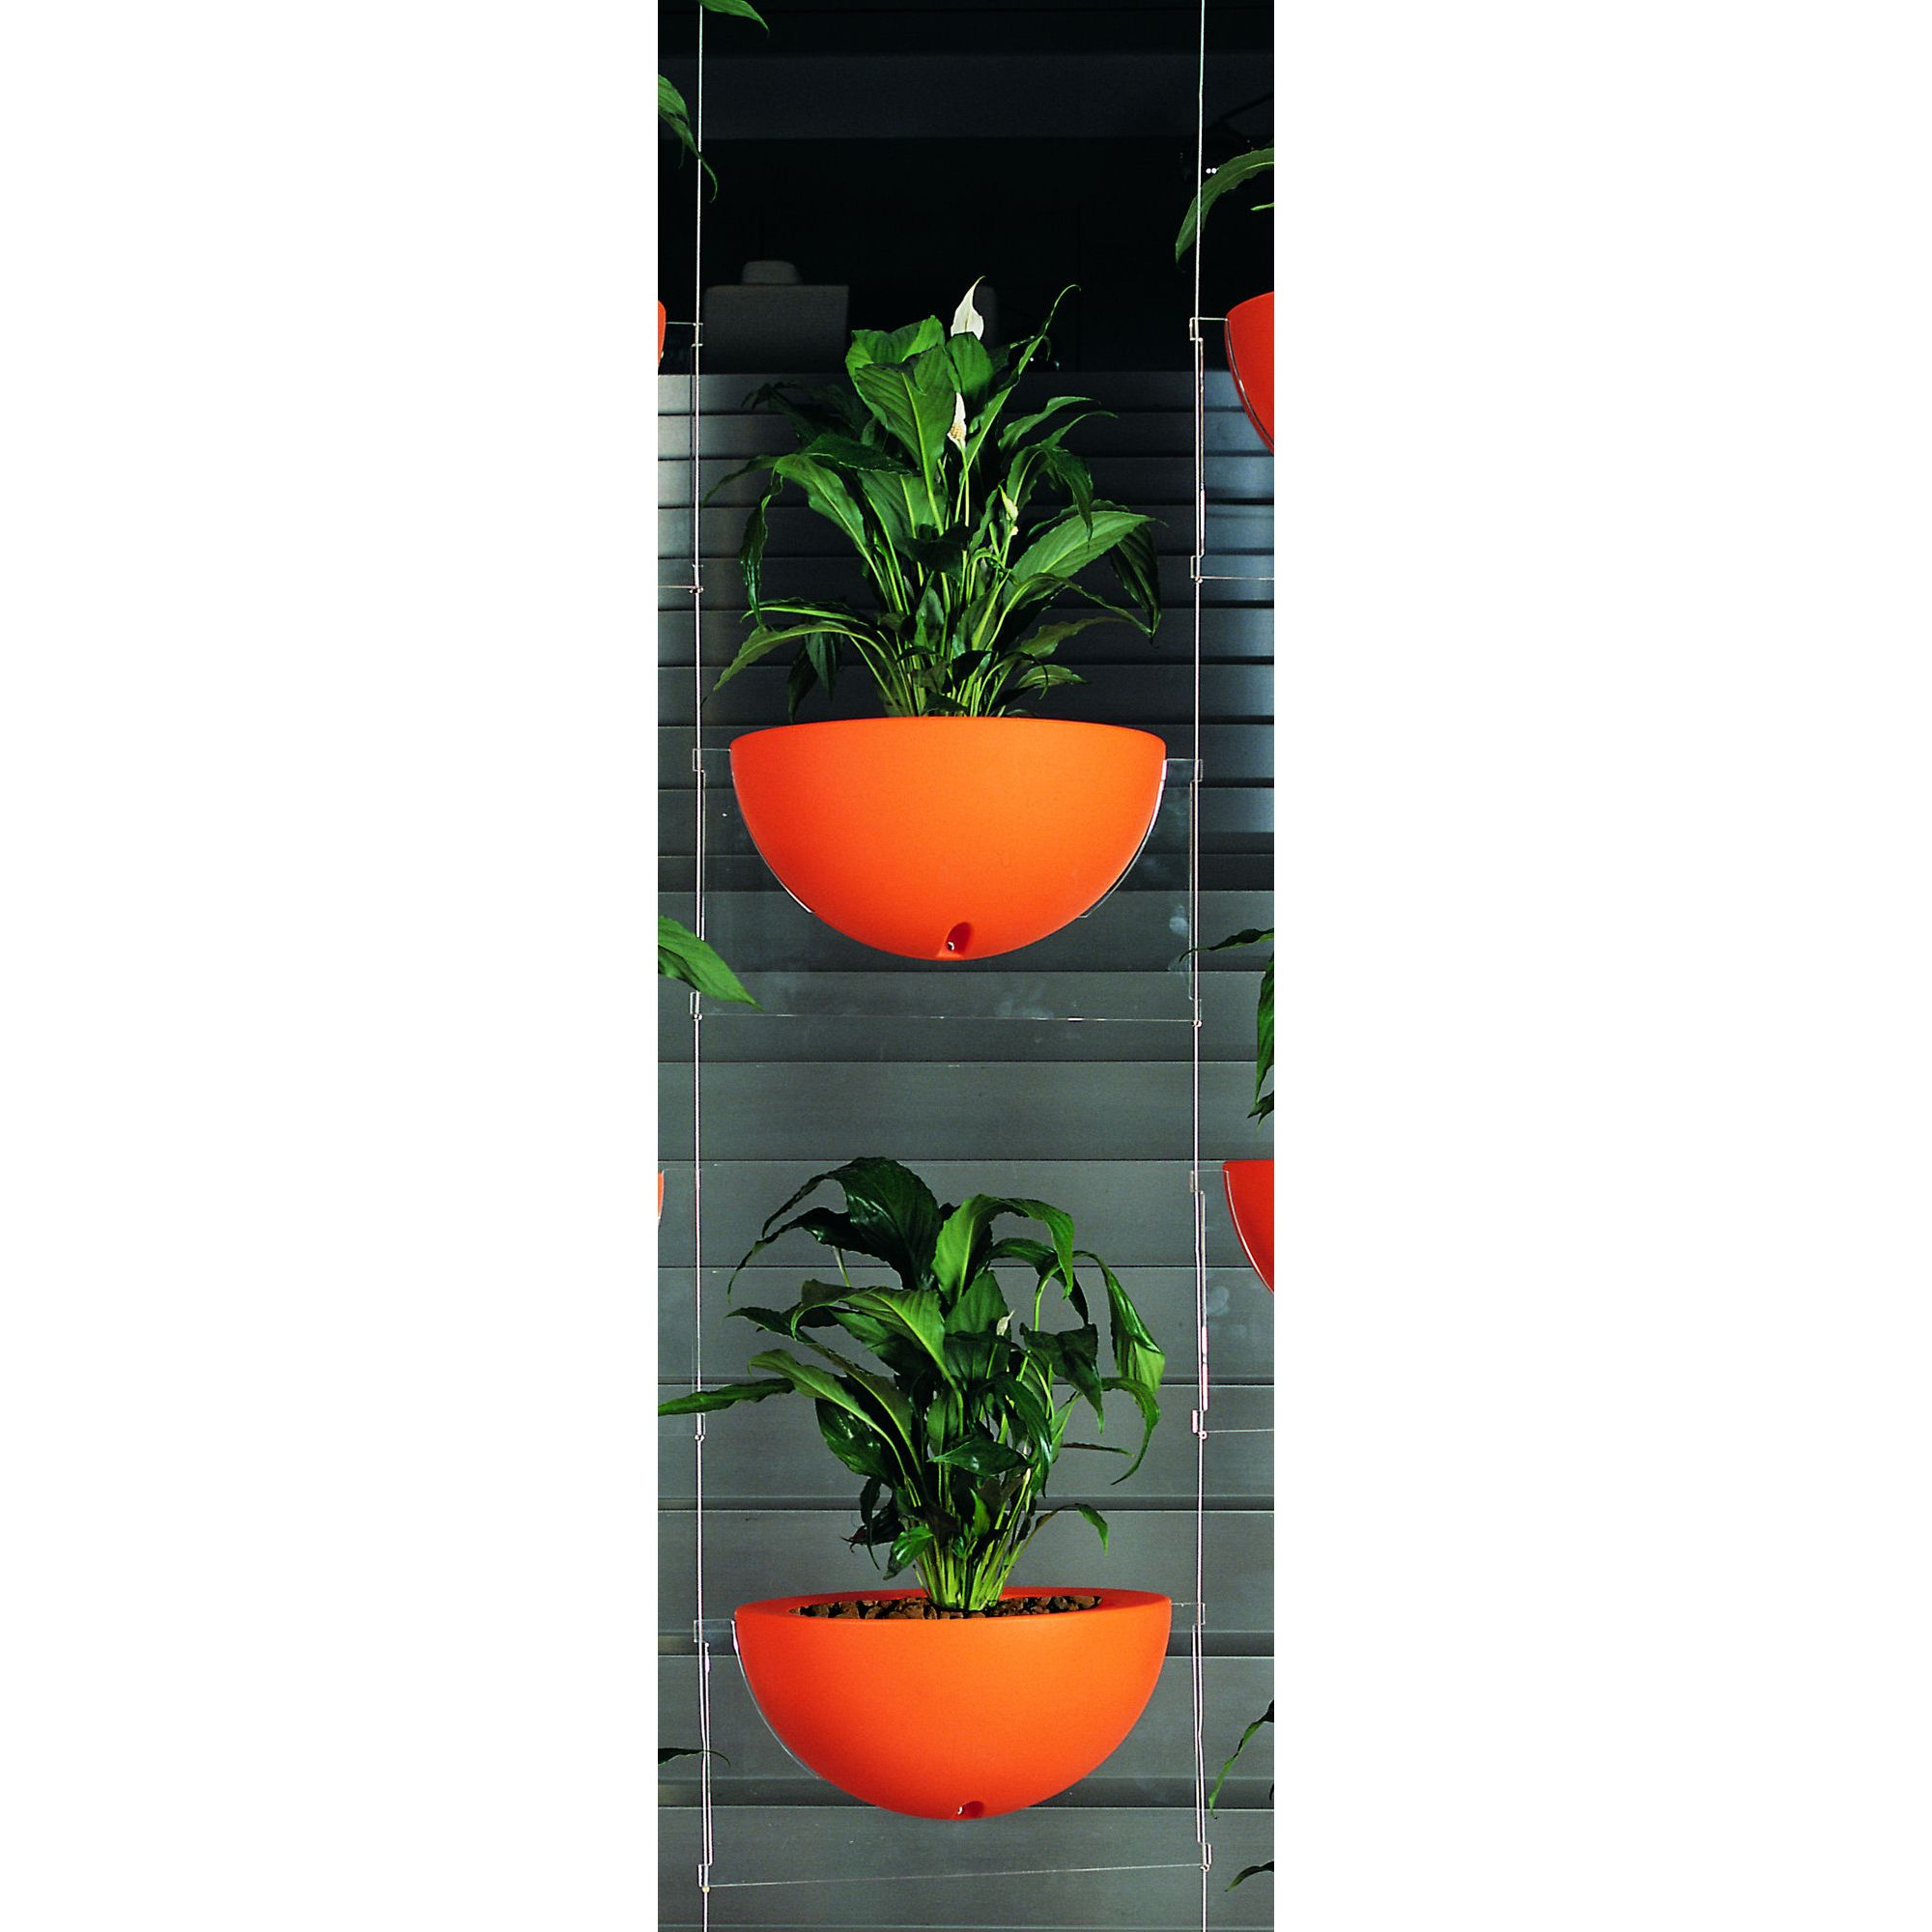 Emporium Positive Design Eebavoglio Double Flower Tray - Orange at Tesco Direct